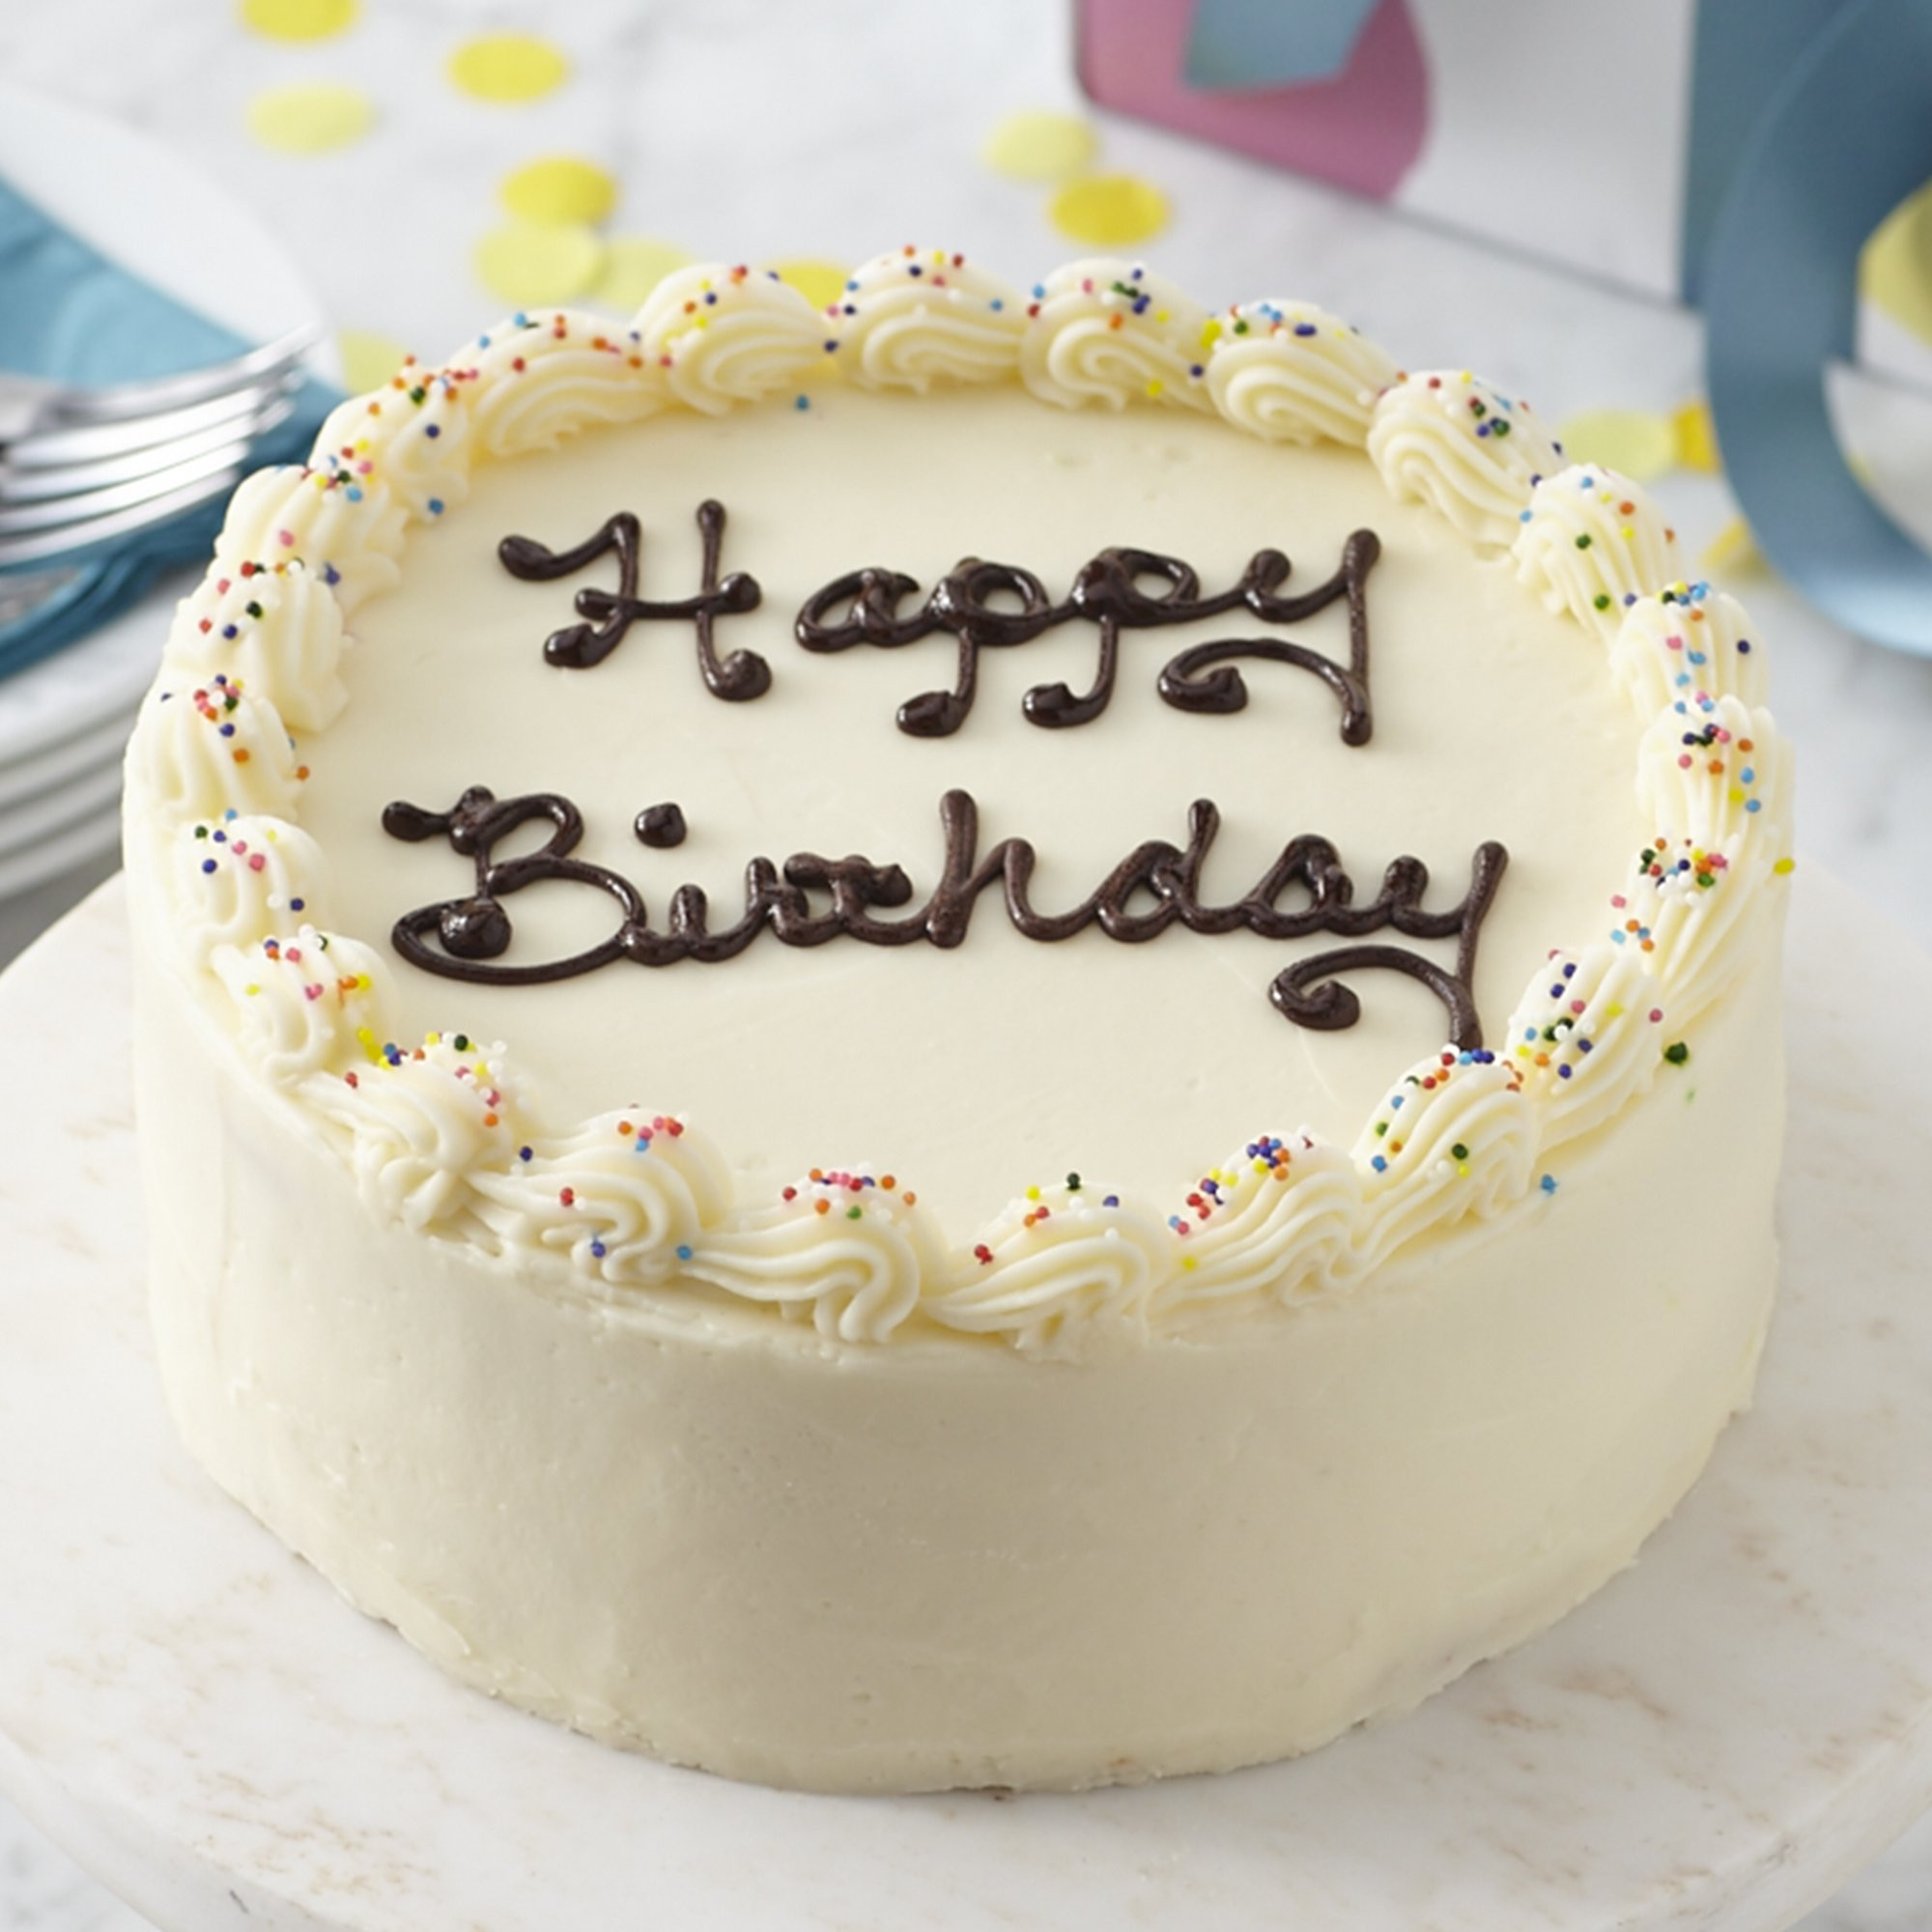 Best ideas about Birthday Cake Photo . Save or Pin Birthday Celebration Cake Now.